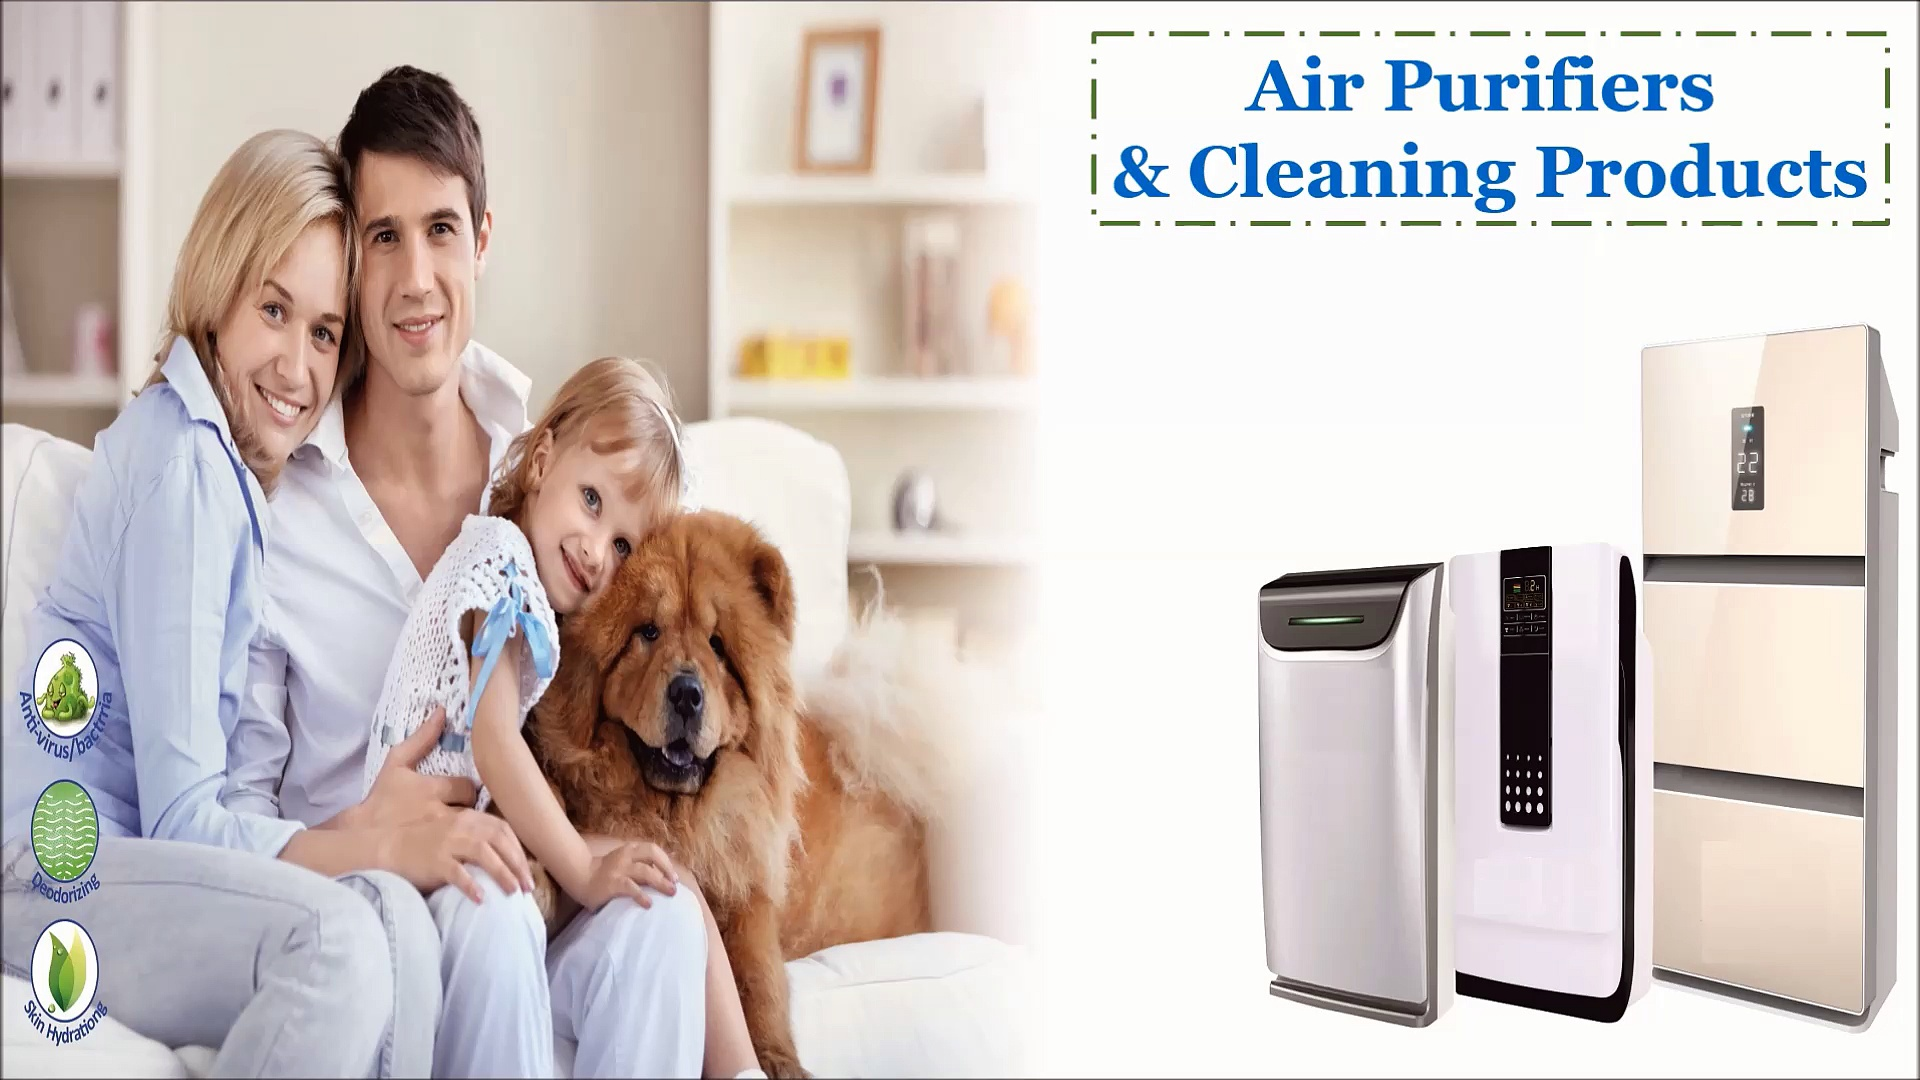 Air Purifiers Products Suppliers